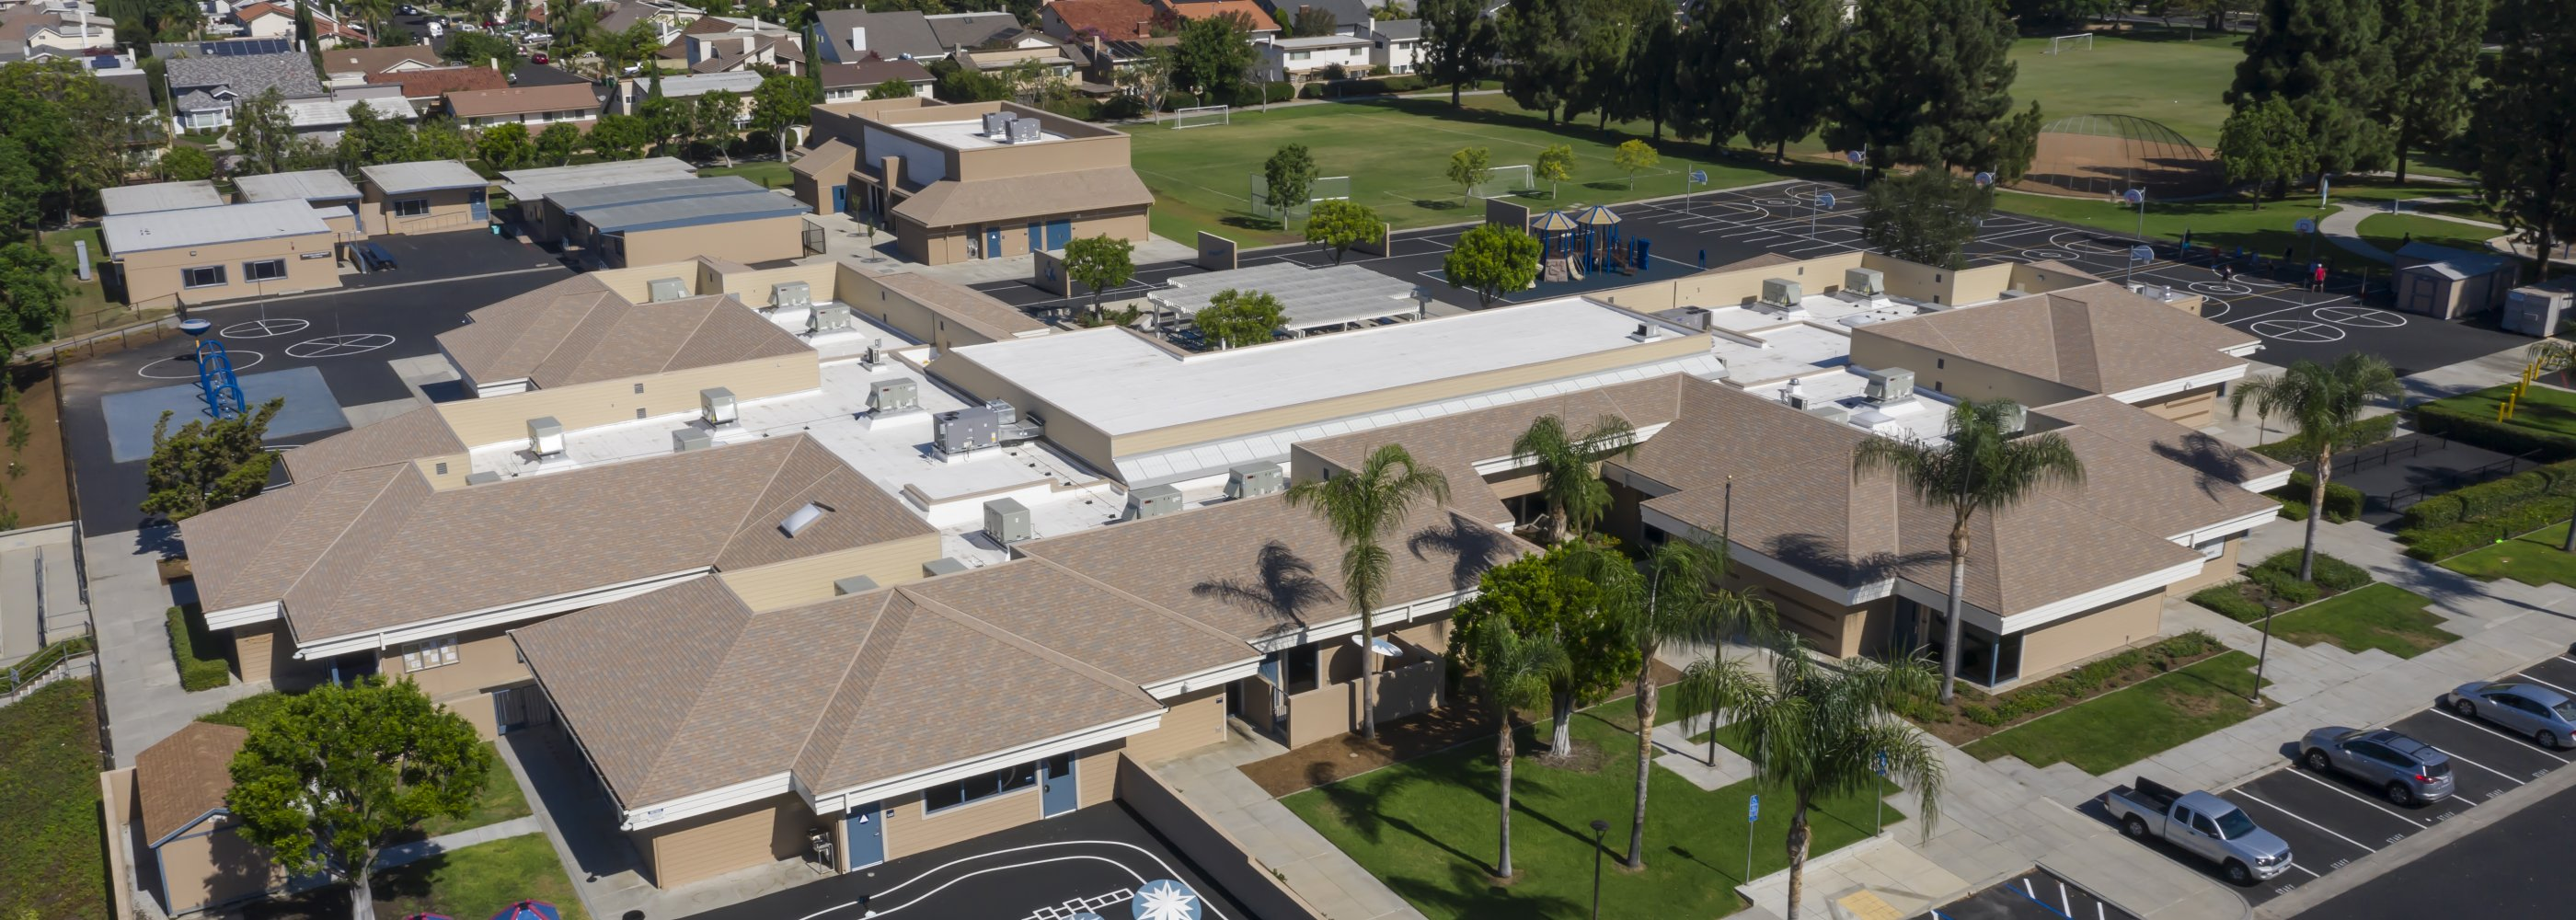 Brywood Elementary Aerial View